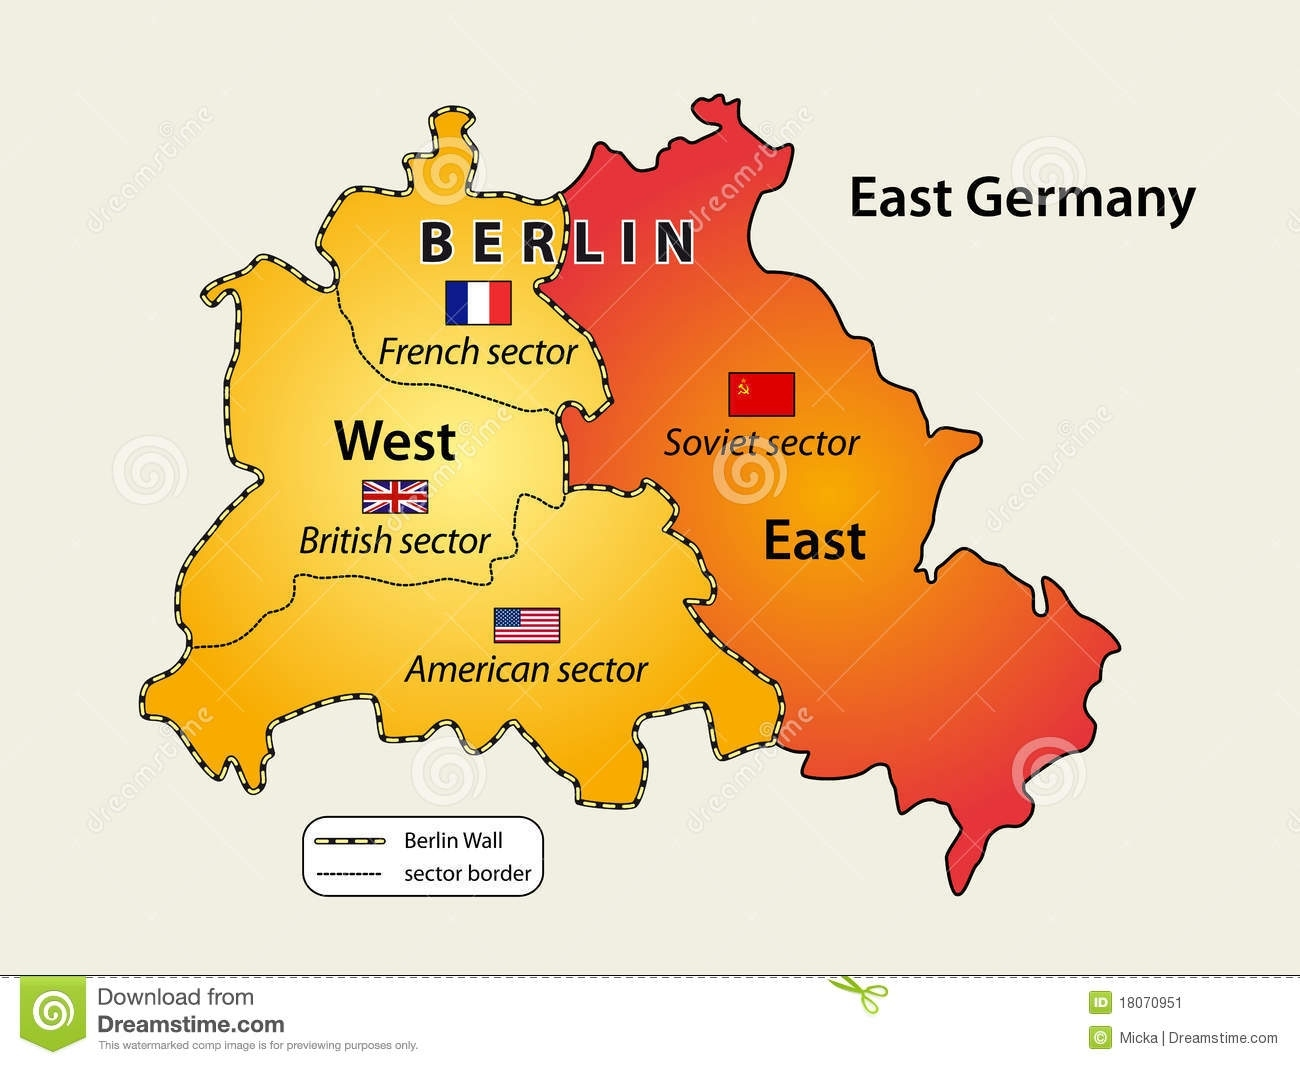 Divided Berlin Stock Vector. Illustration Of East, German - 18070951 intended for Germany Map Before 1989